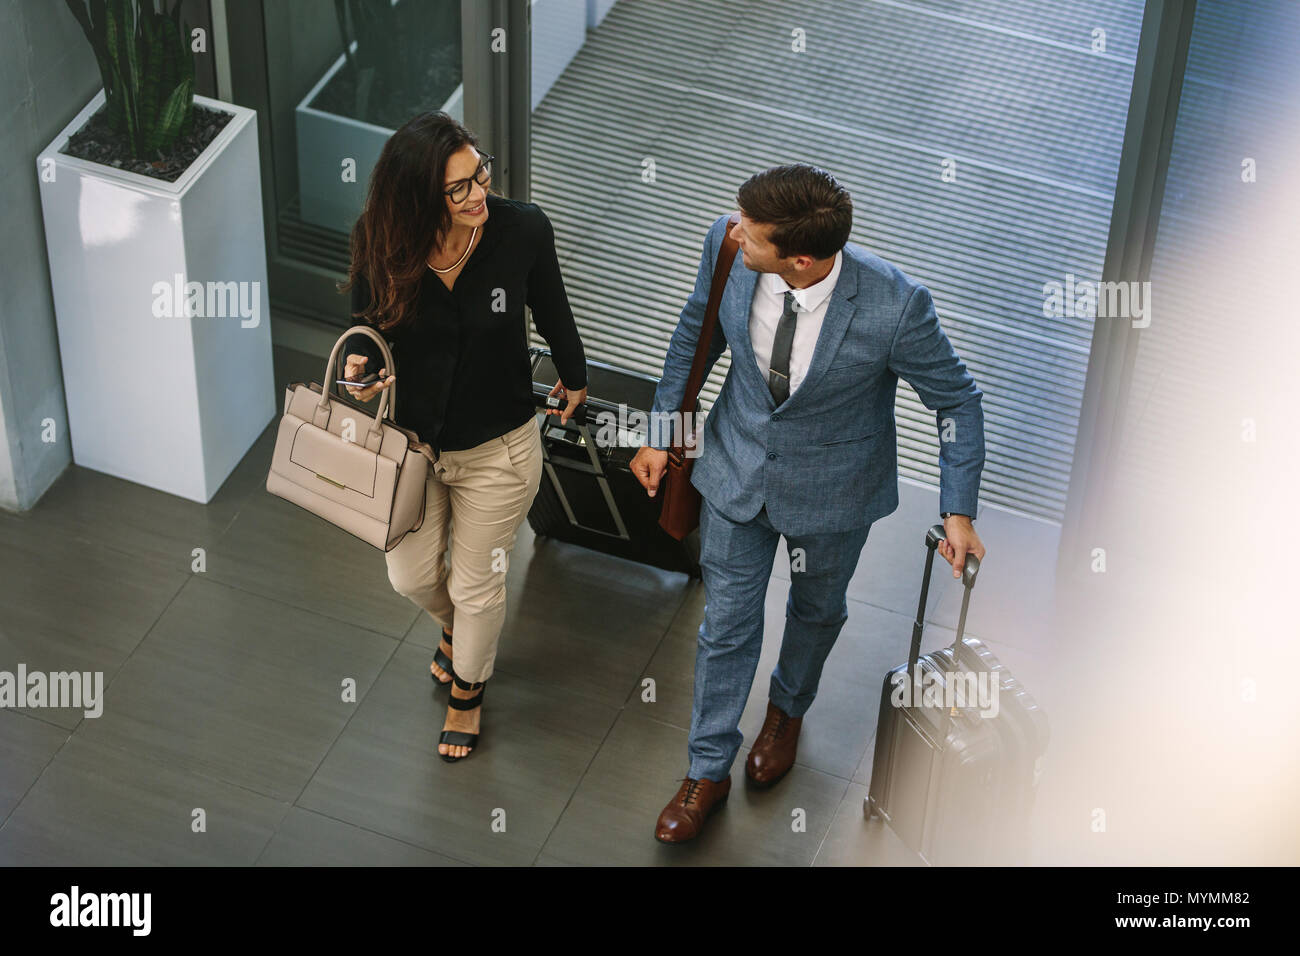 Businessman and woman walking together with baggage and talking. Business people arriving for conference. - Stock Image